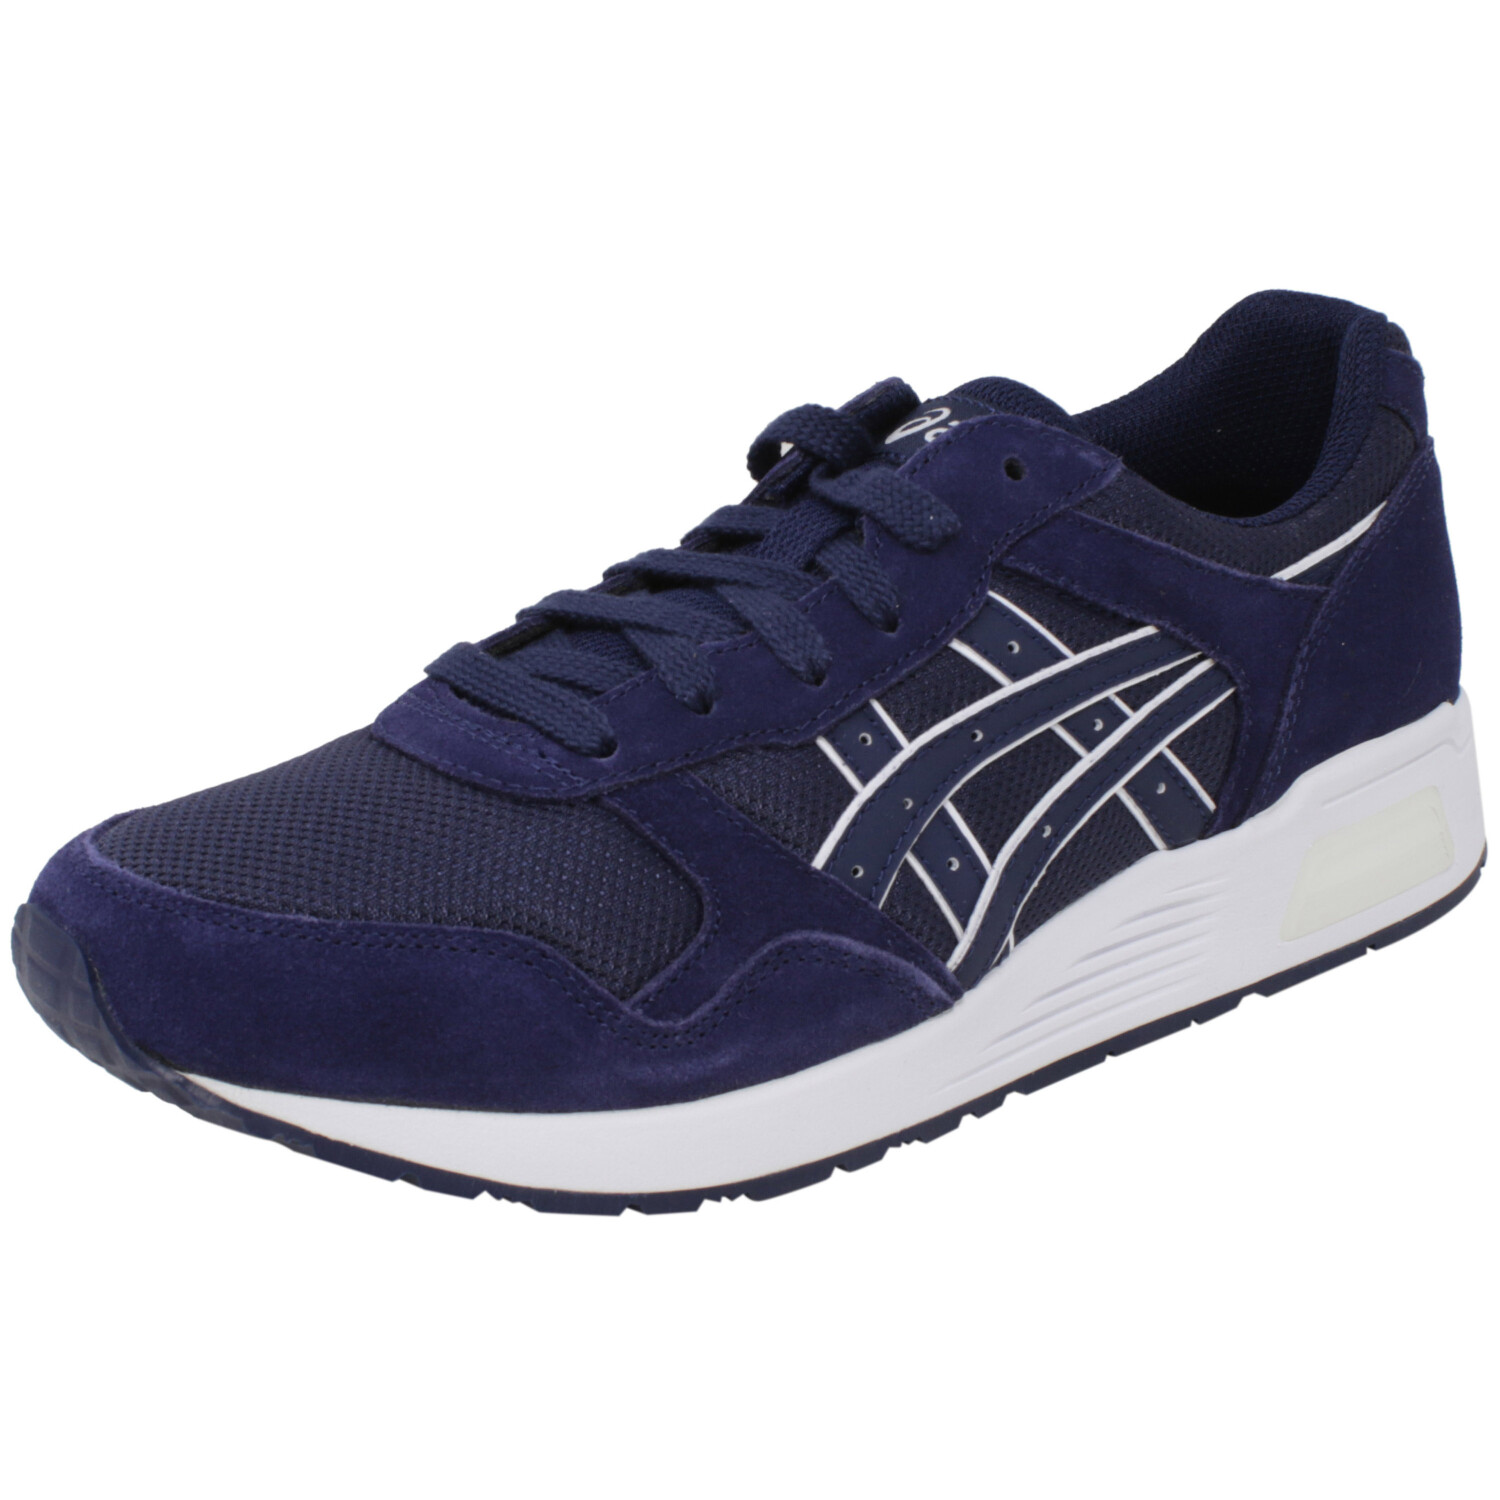 Asics Men's Lyte-Trainer Peacoat / Ankle-High Leather Training Shoes - 10.5M